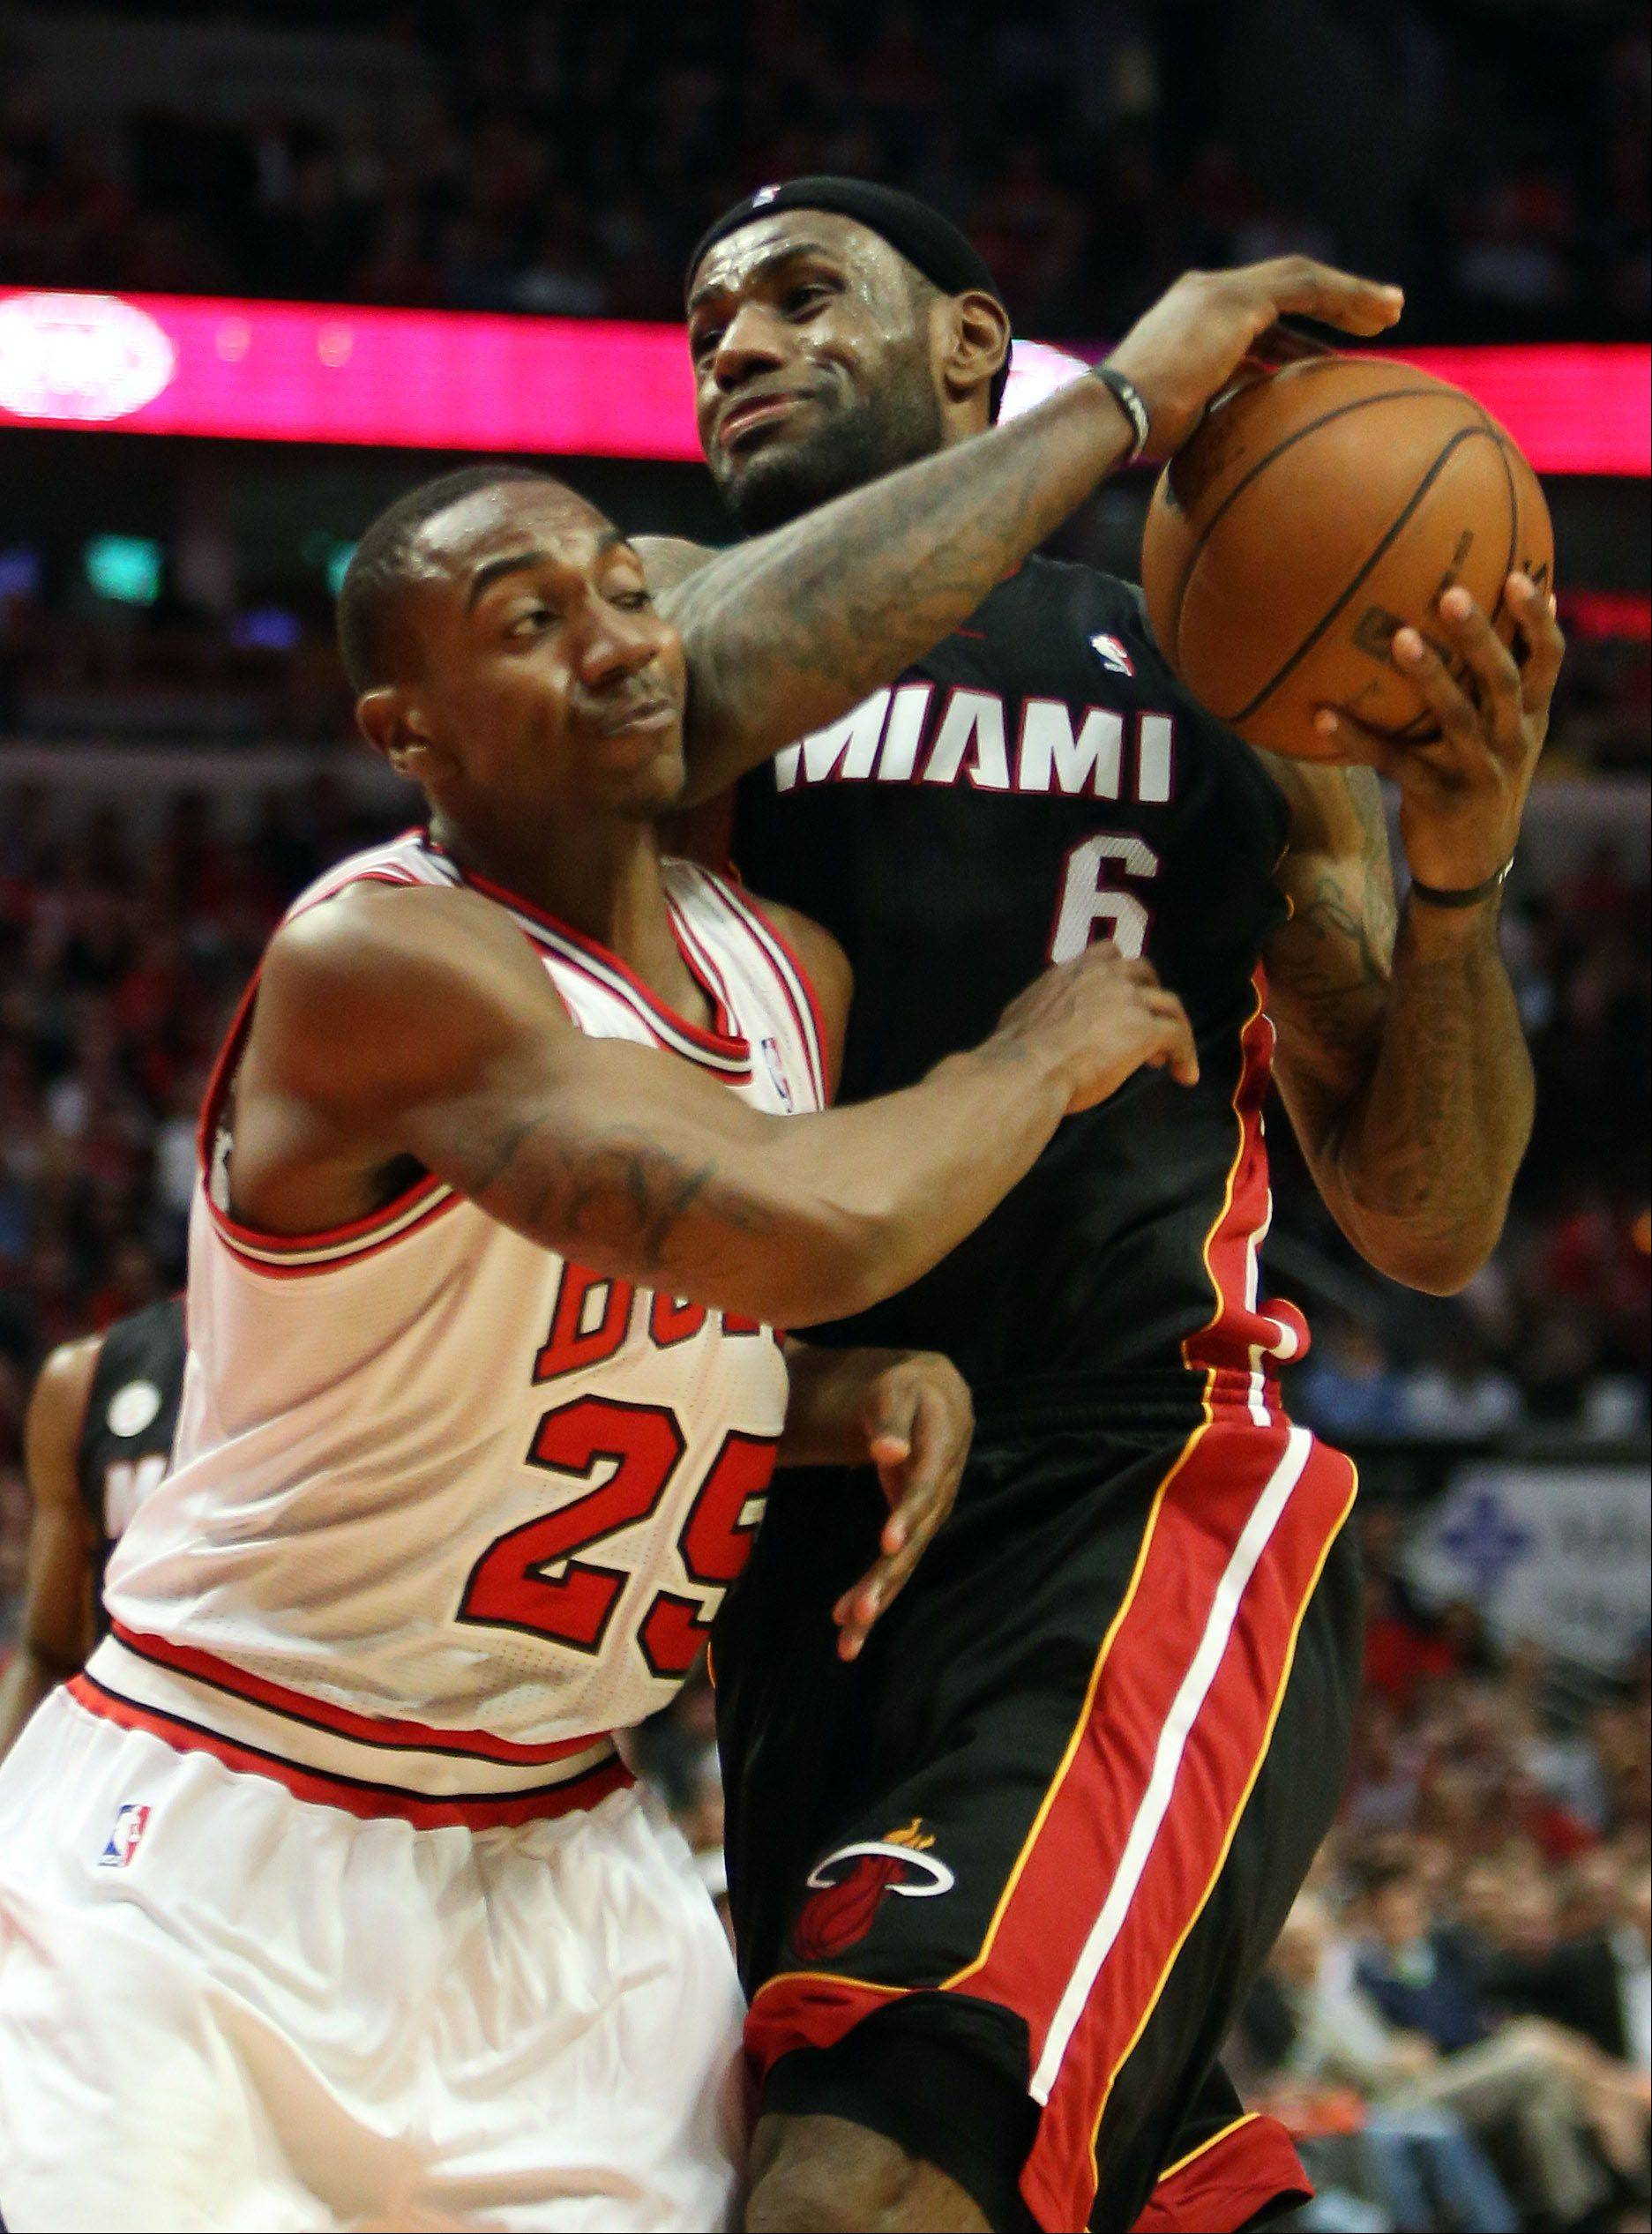 Bulls guard Marquis Teague, shown here defending against Miami Heat forward LeBron James during game 4 of the Eastern Conference semifinals last season, had a busy day Tuesday.